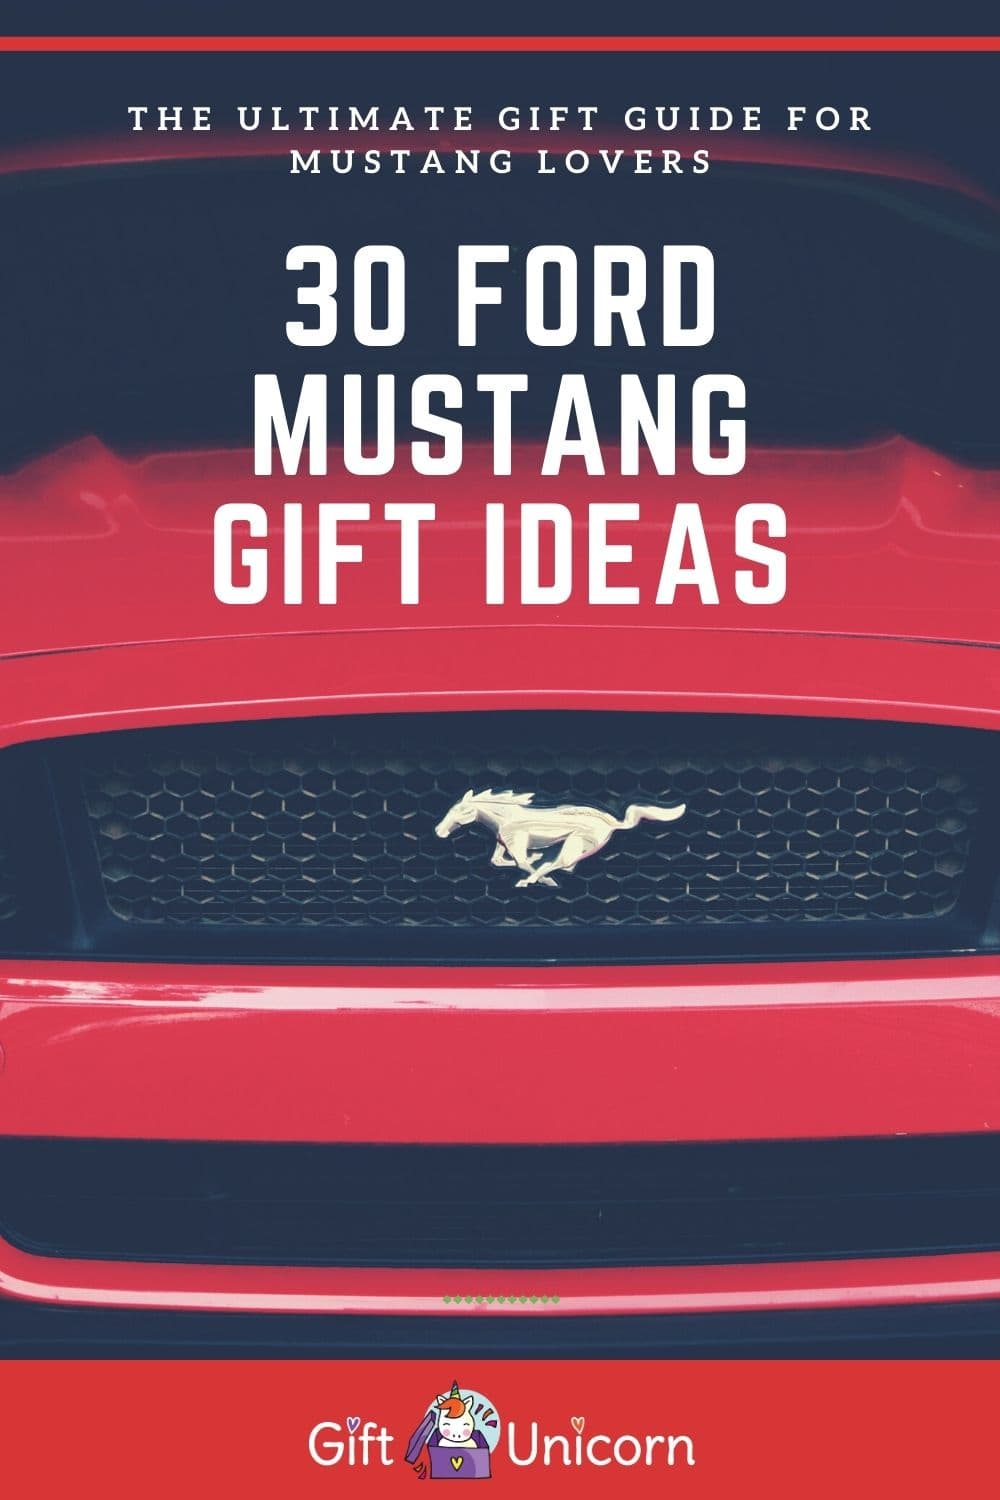 ford mustang gift ideas pinterest pin image